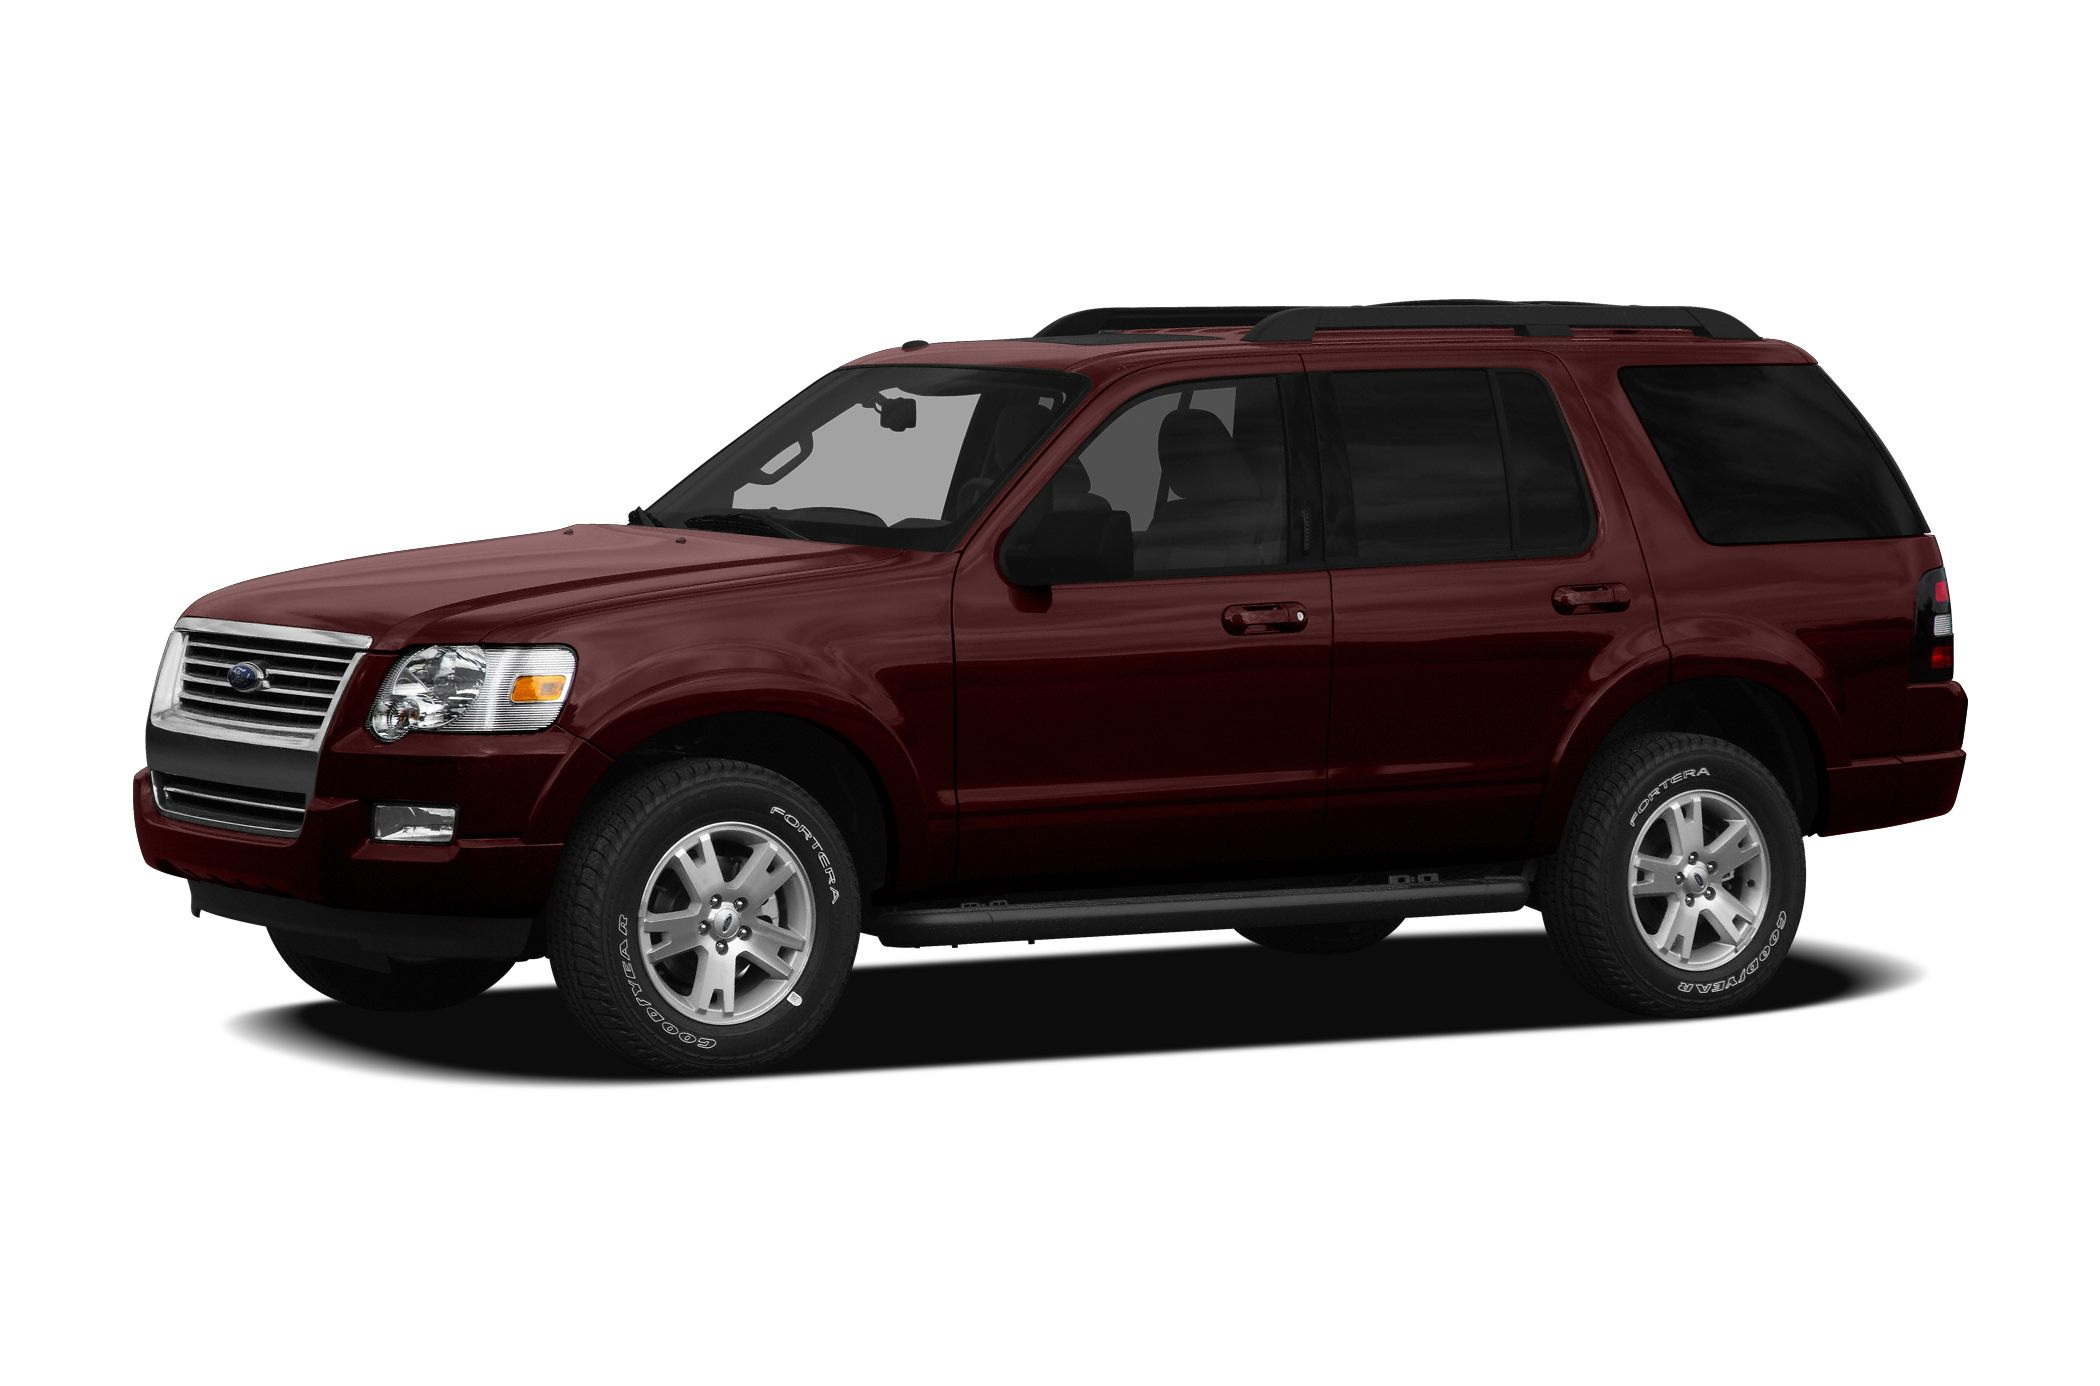 2009 Ford Explorer XLT SUV for sale in Lincoln for $11,450 with 104,721 miles.